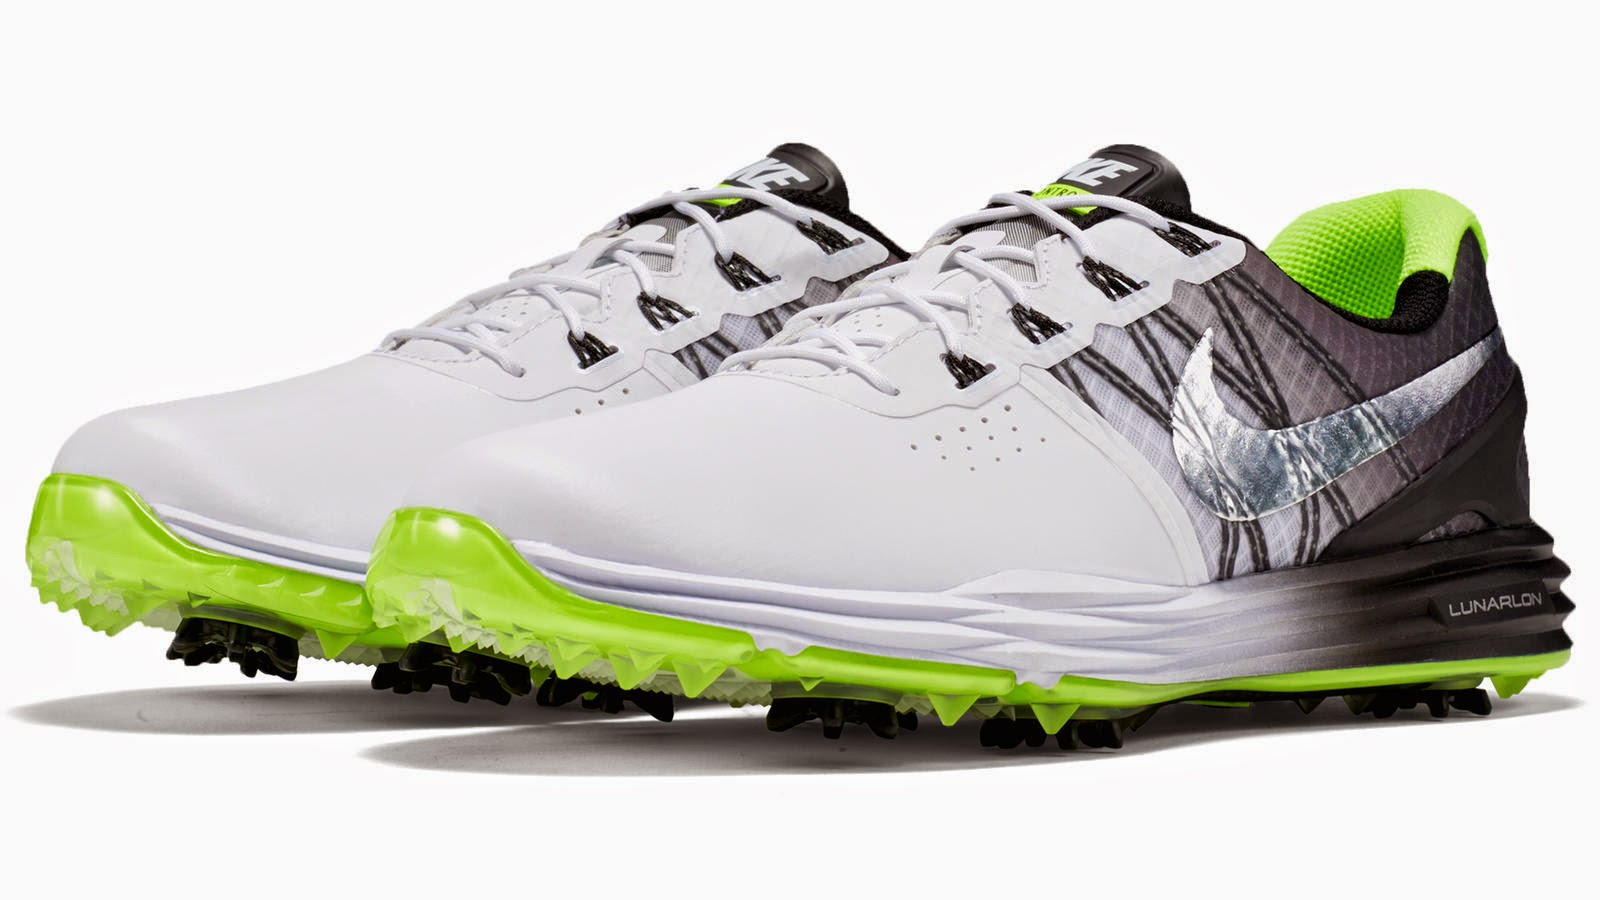 (RELEASE) - Four-time Major winner Rory McIlroy laced up a limited-edition Nike  Lunar Control 3 shoe for his final round. This version of the Nike Lunar ... c893a9e45